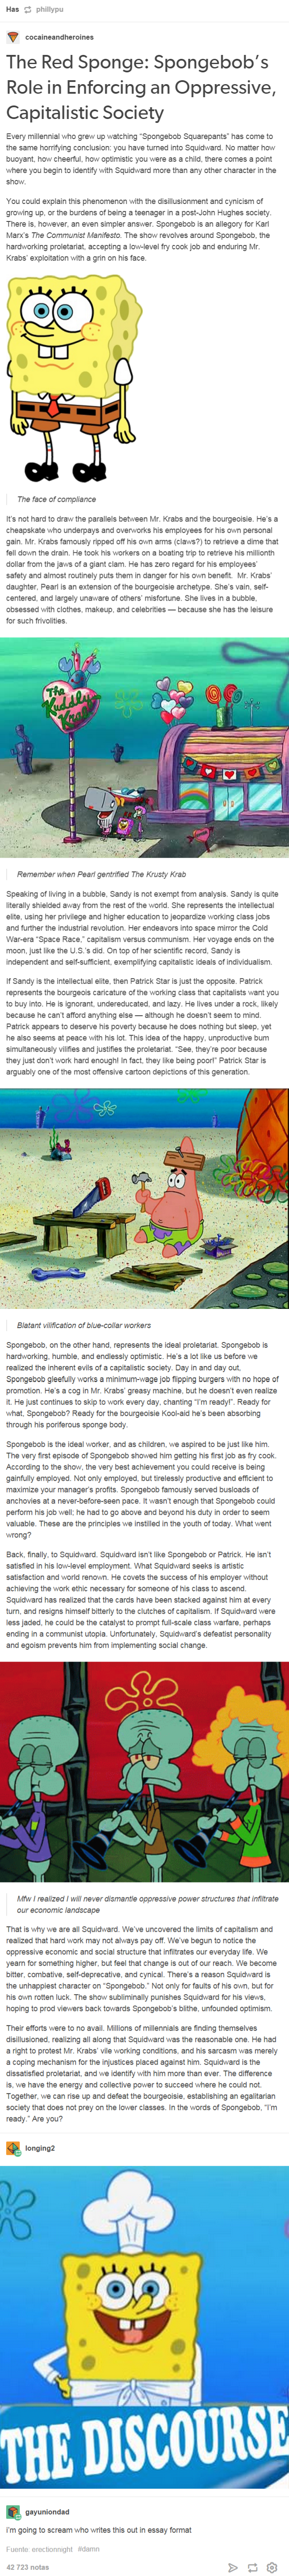 spongebob is about communism | the vault | pinterest | spongebob